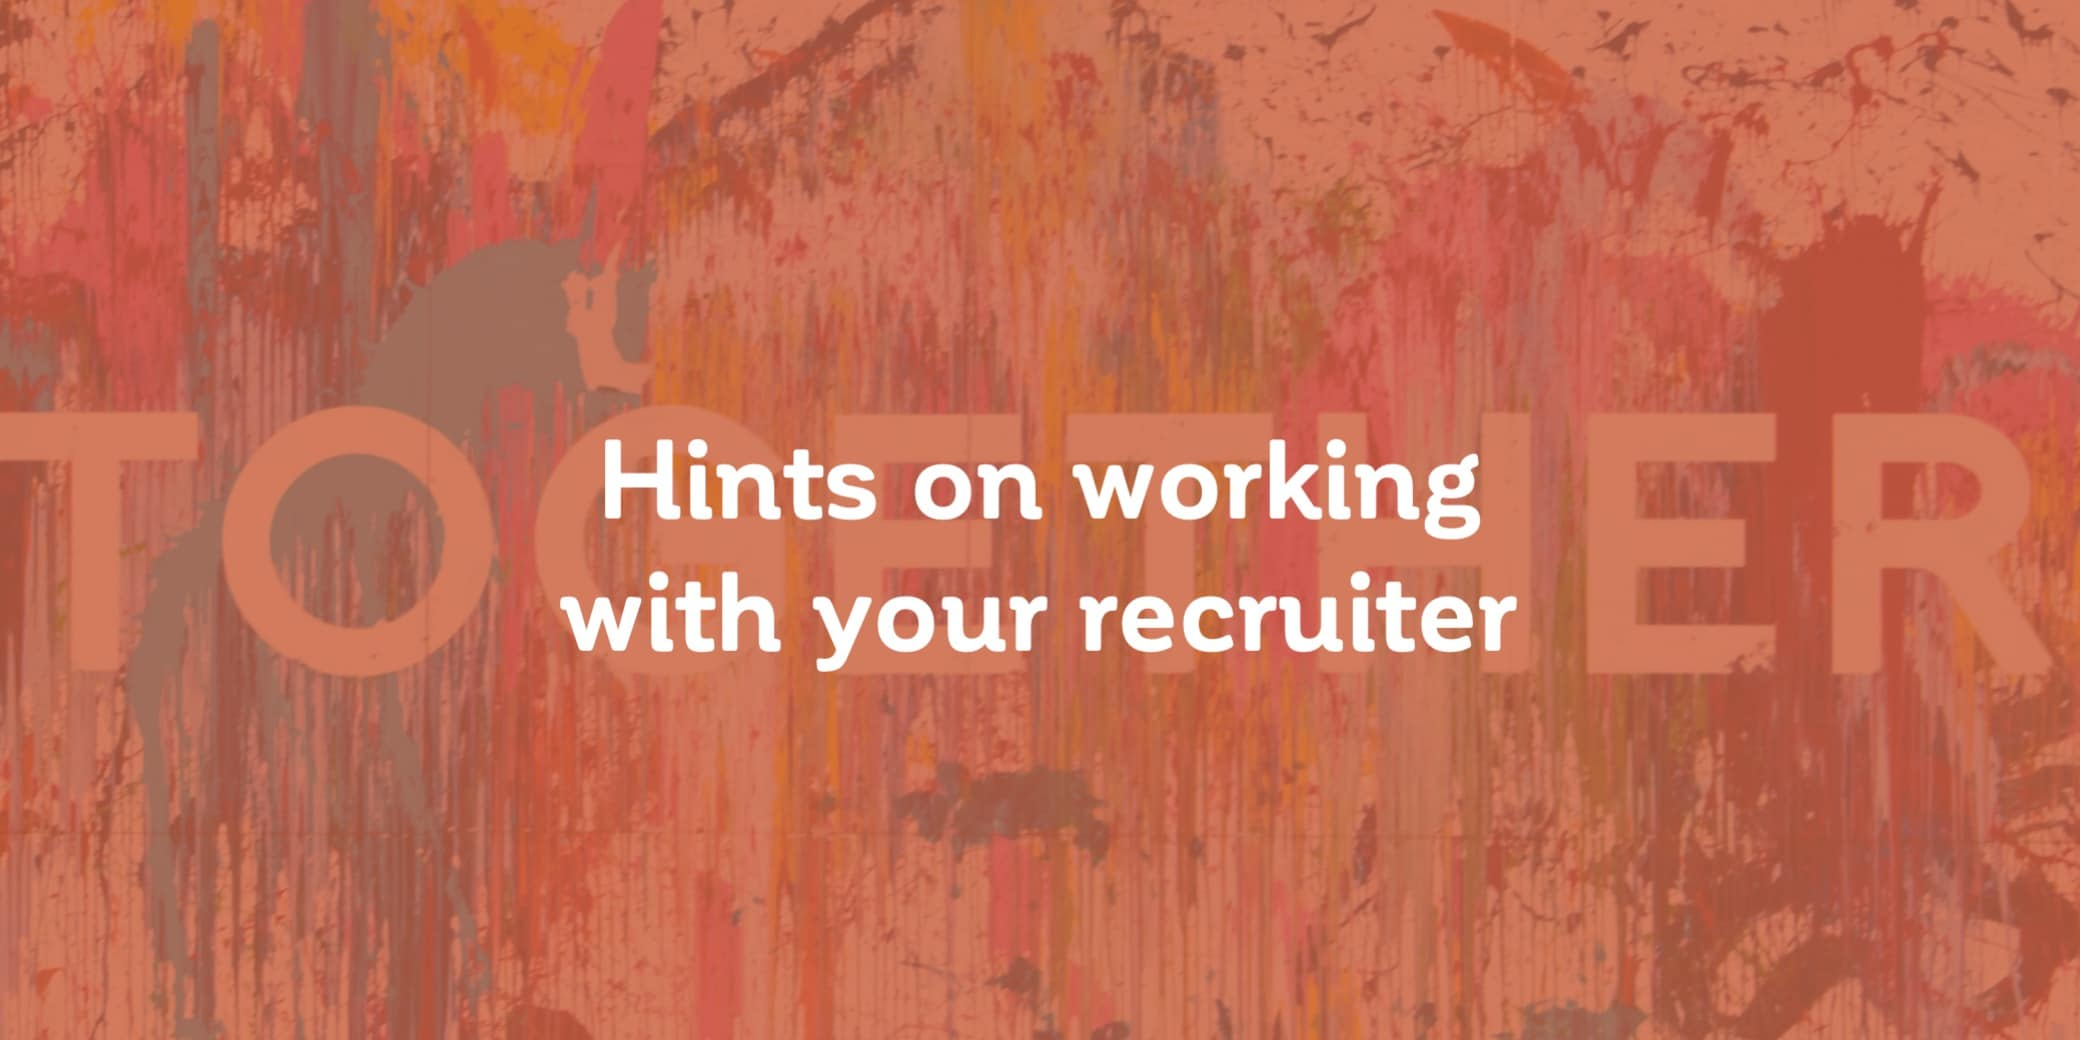 Tips for working with recruiters to help you get the best result